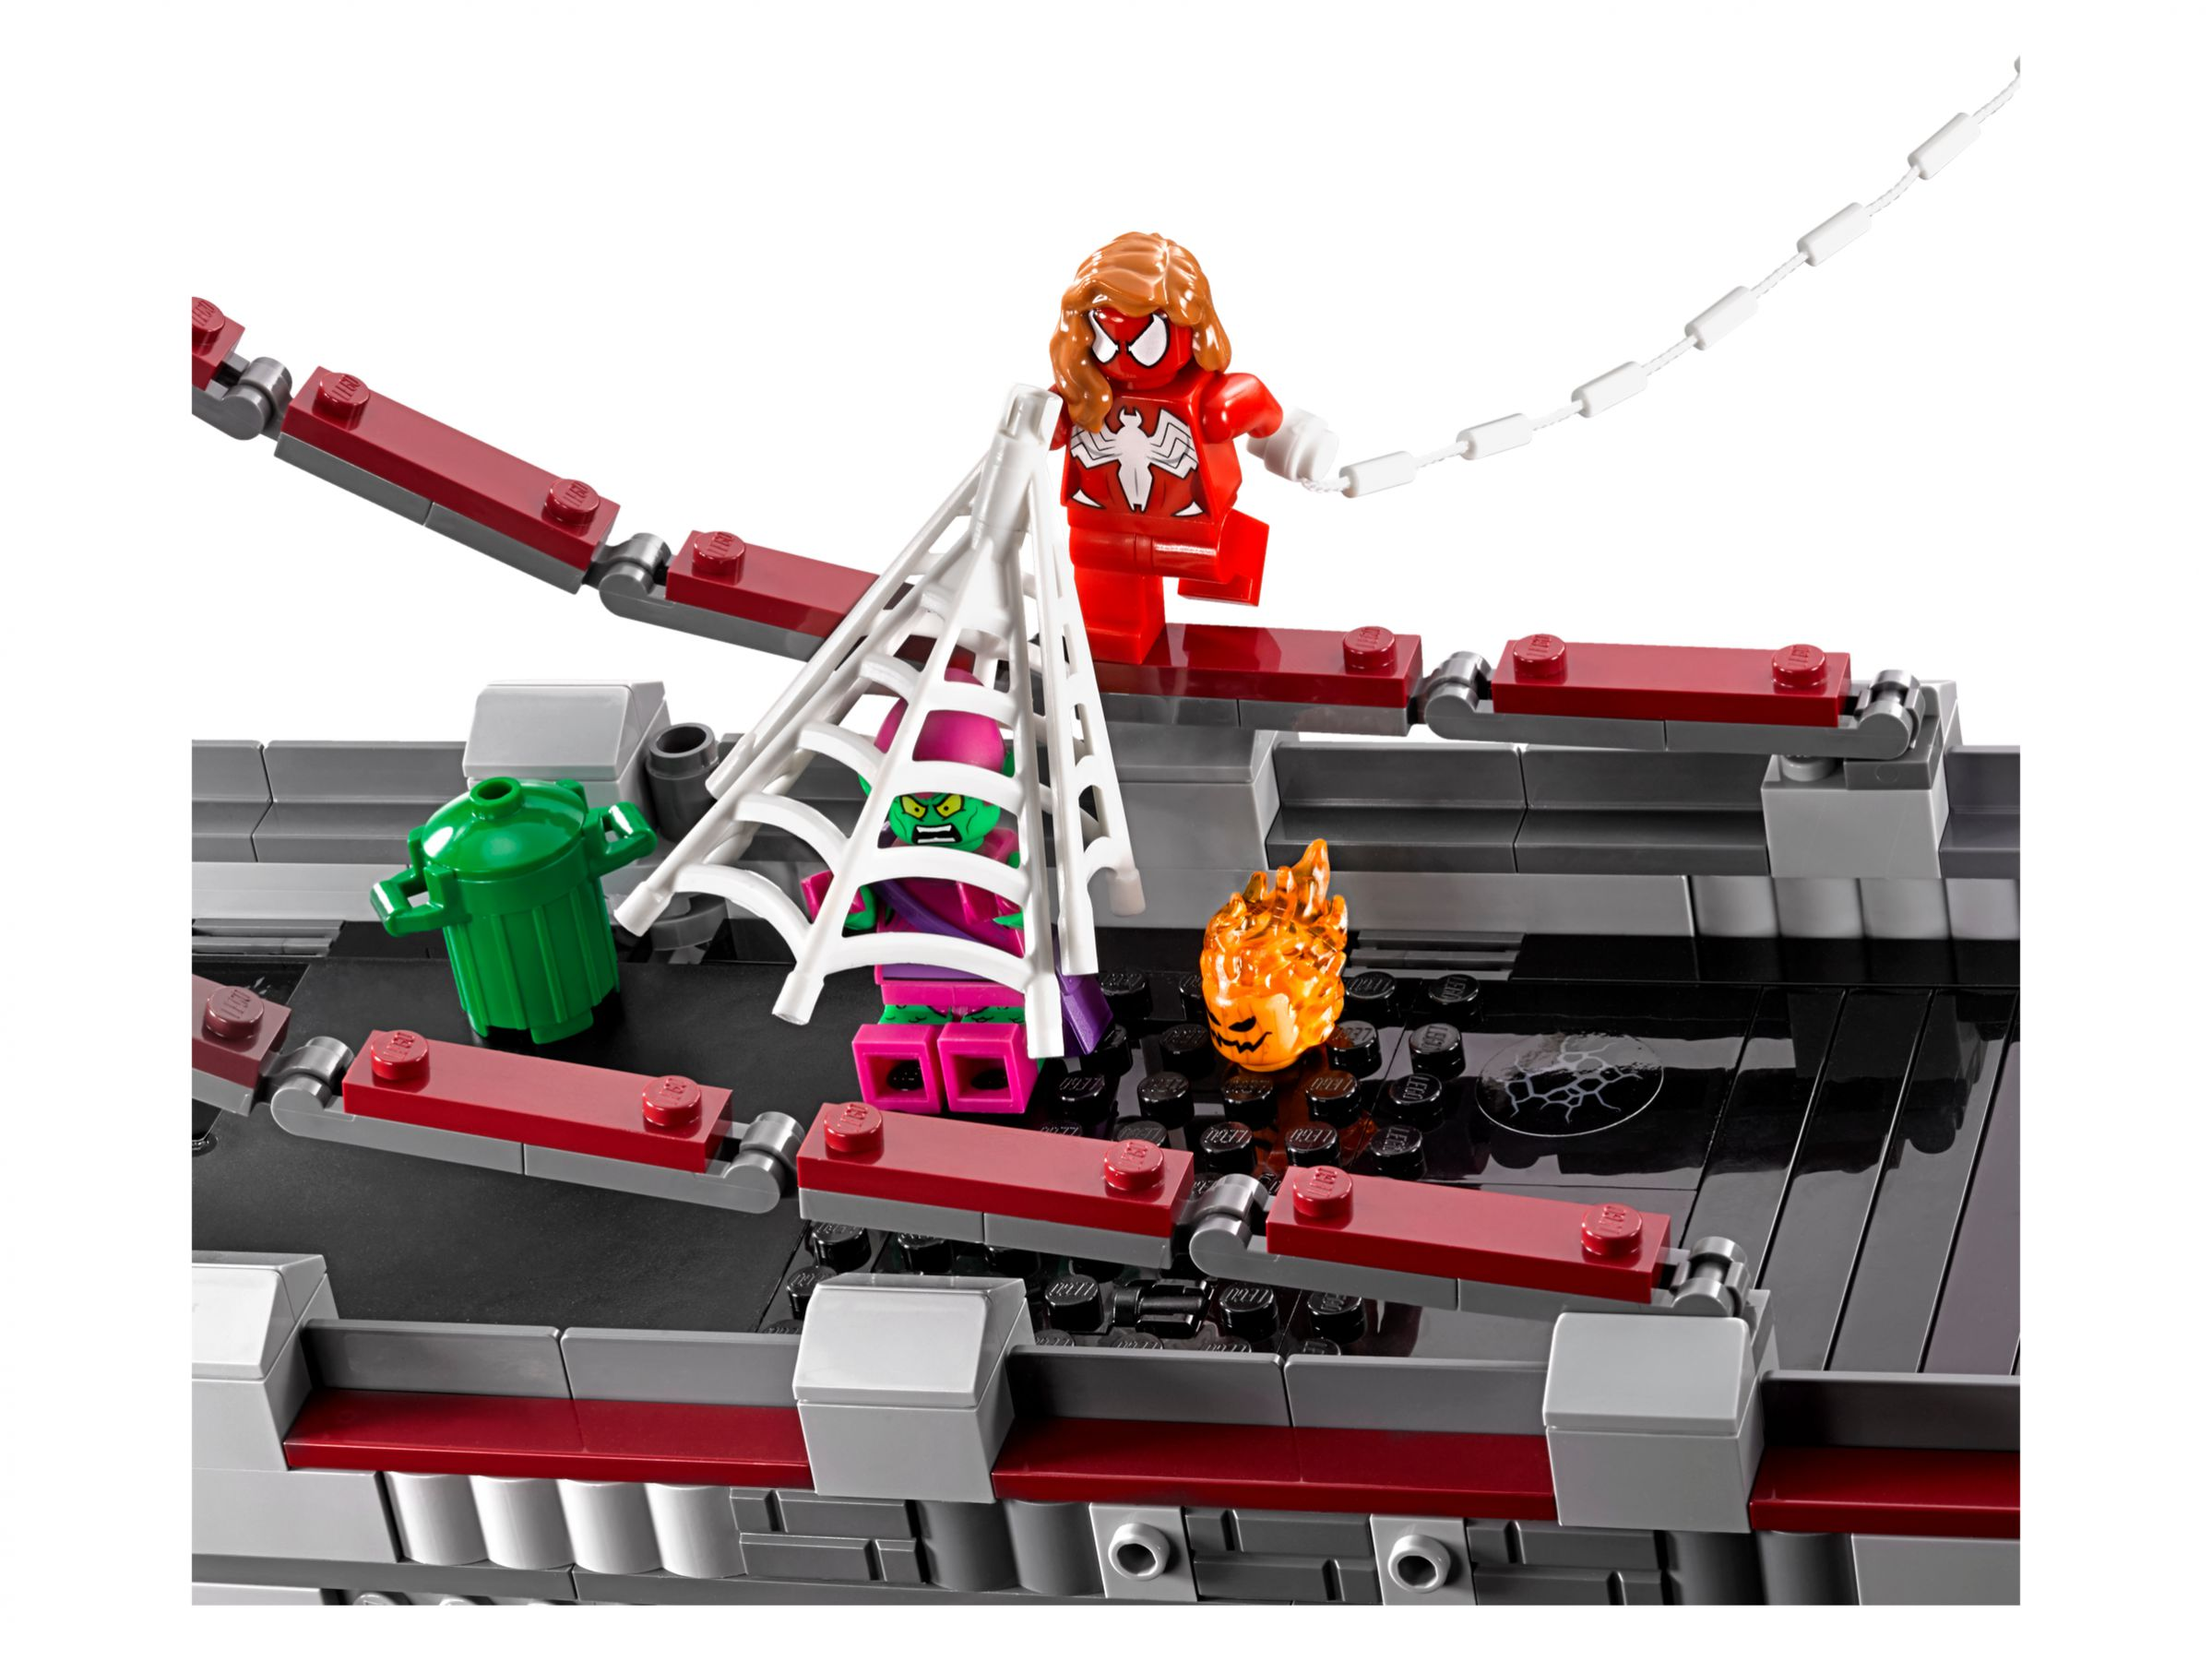 LEGO Super Heroes 76057 Spider-Man: Ultimatives Brückenduell der Web-Warriors LEGO_76057_alt6.jpg